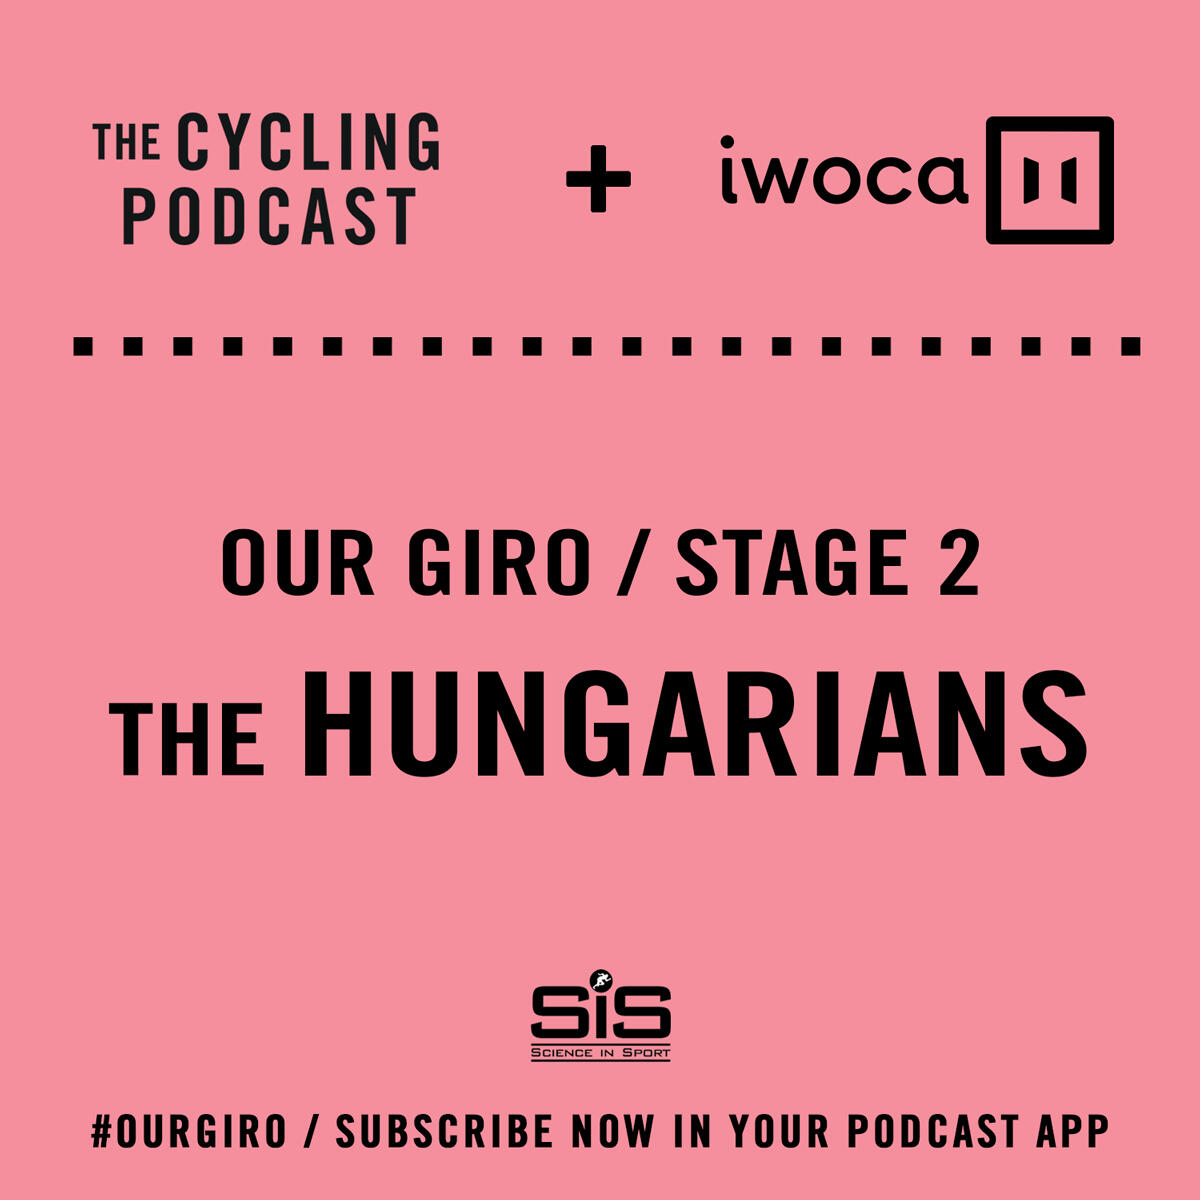 47: Our Giro stage 2: The Hungarians